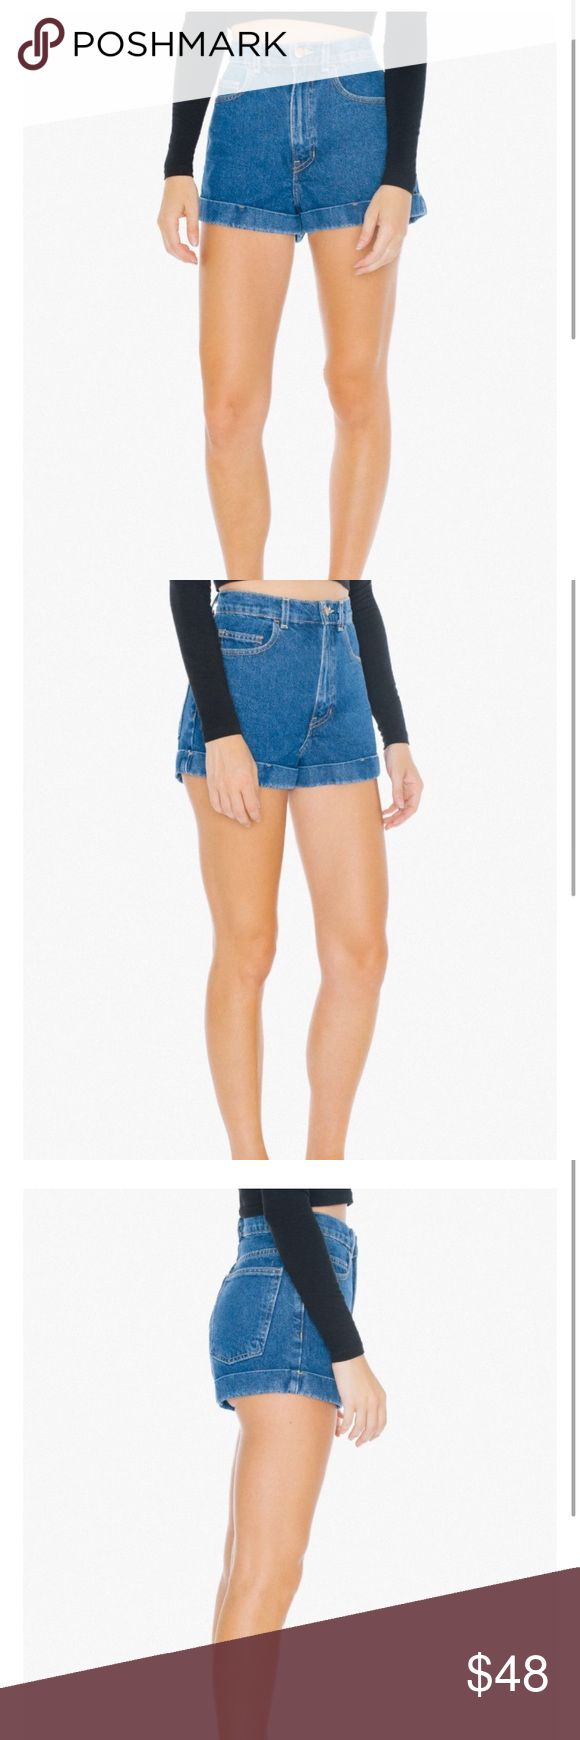 American Apparel High-Waist Jean Cuff Shorts! Note: color is actually the shorts in the last two pictures! Brand new with tags! Photo credits to AA. Last two pictures are mine! Offers are welcome but no lowballing! American Apparel Shorts Jean Shorts